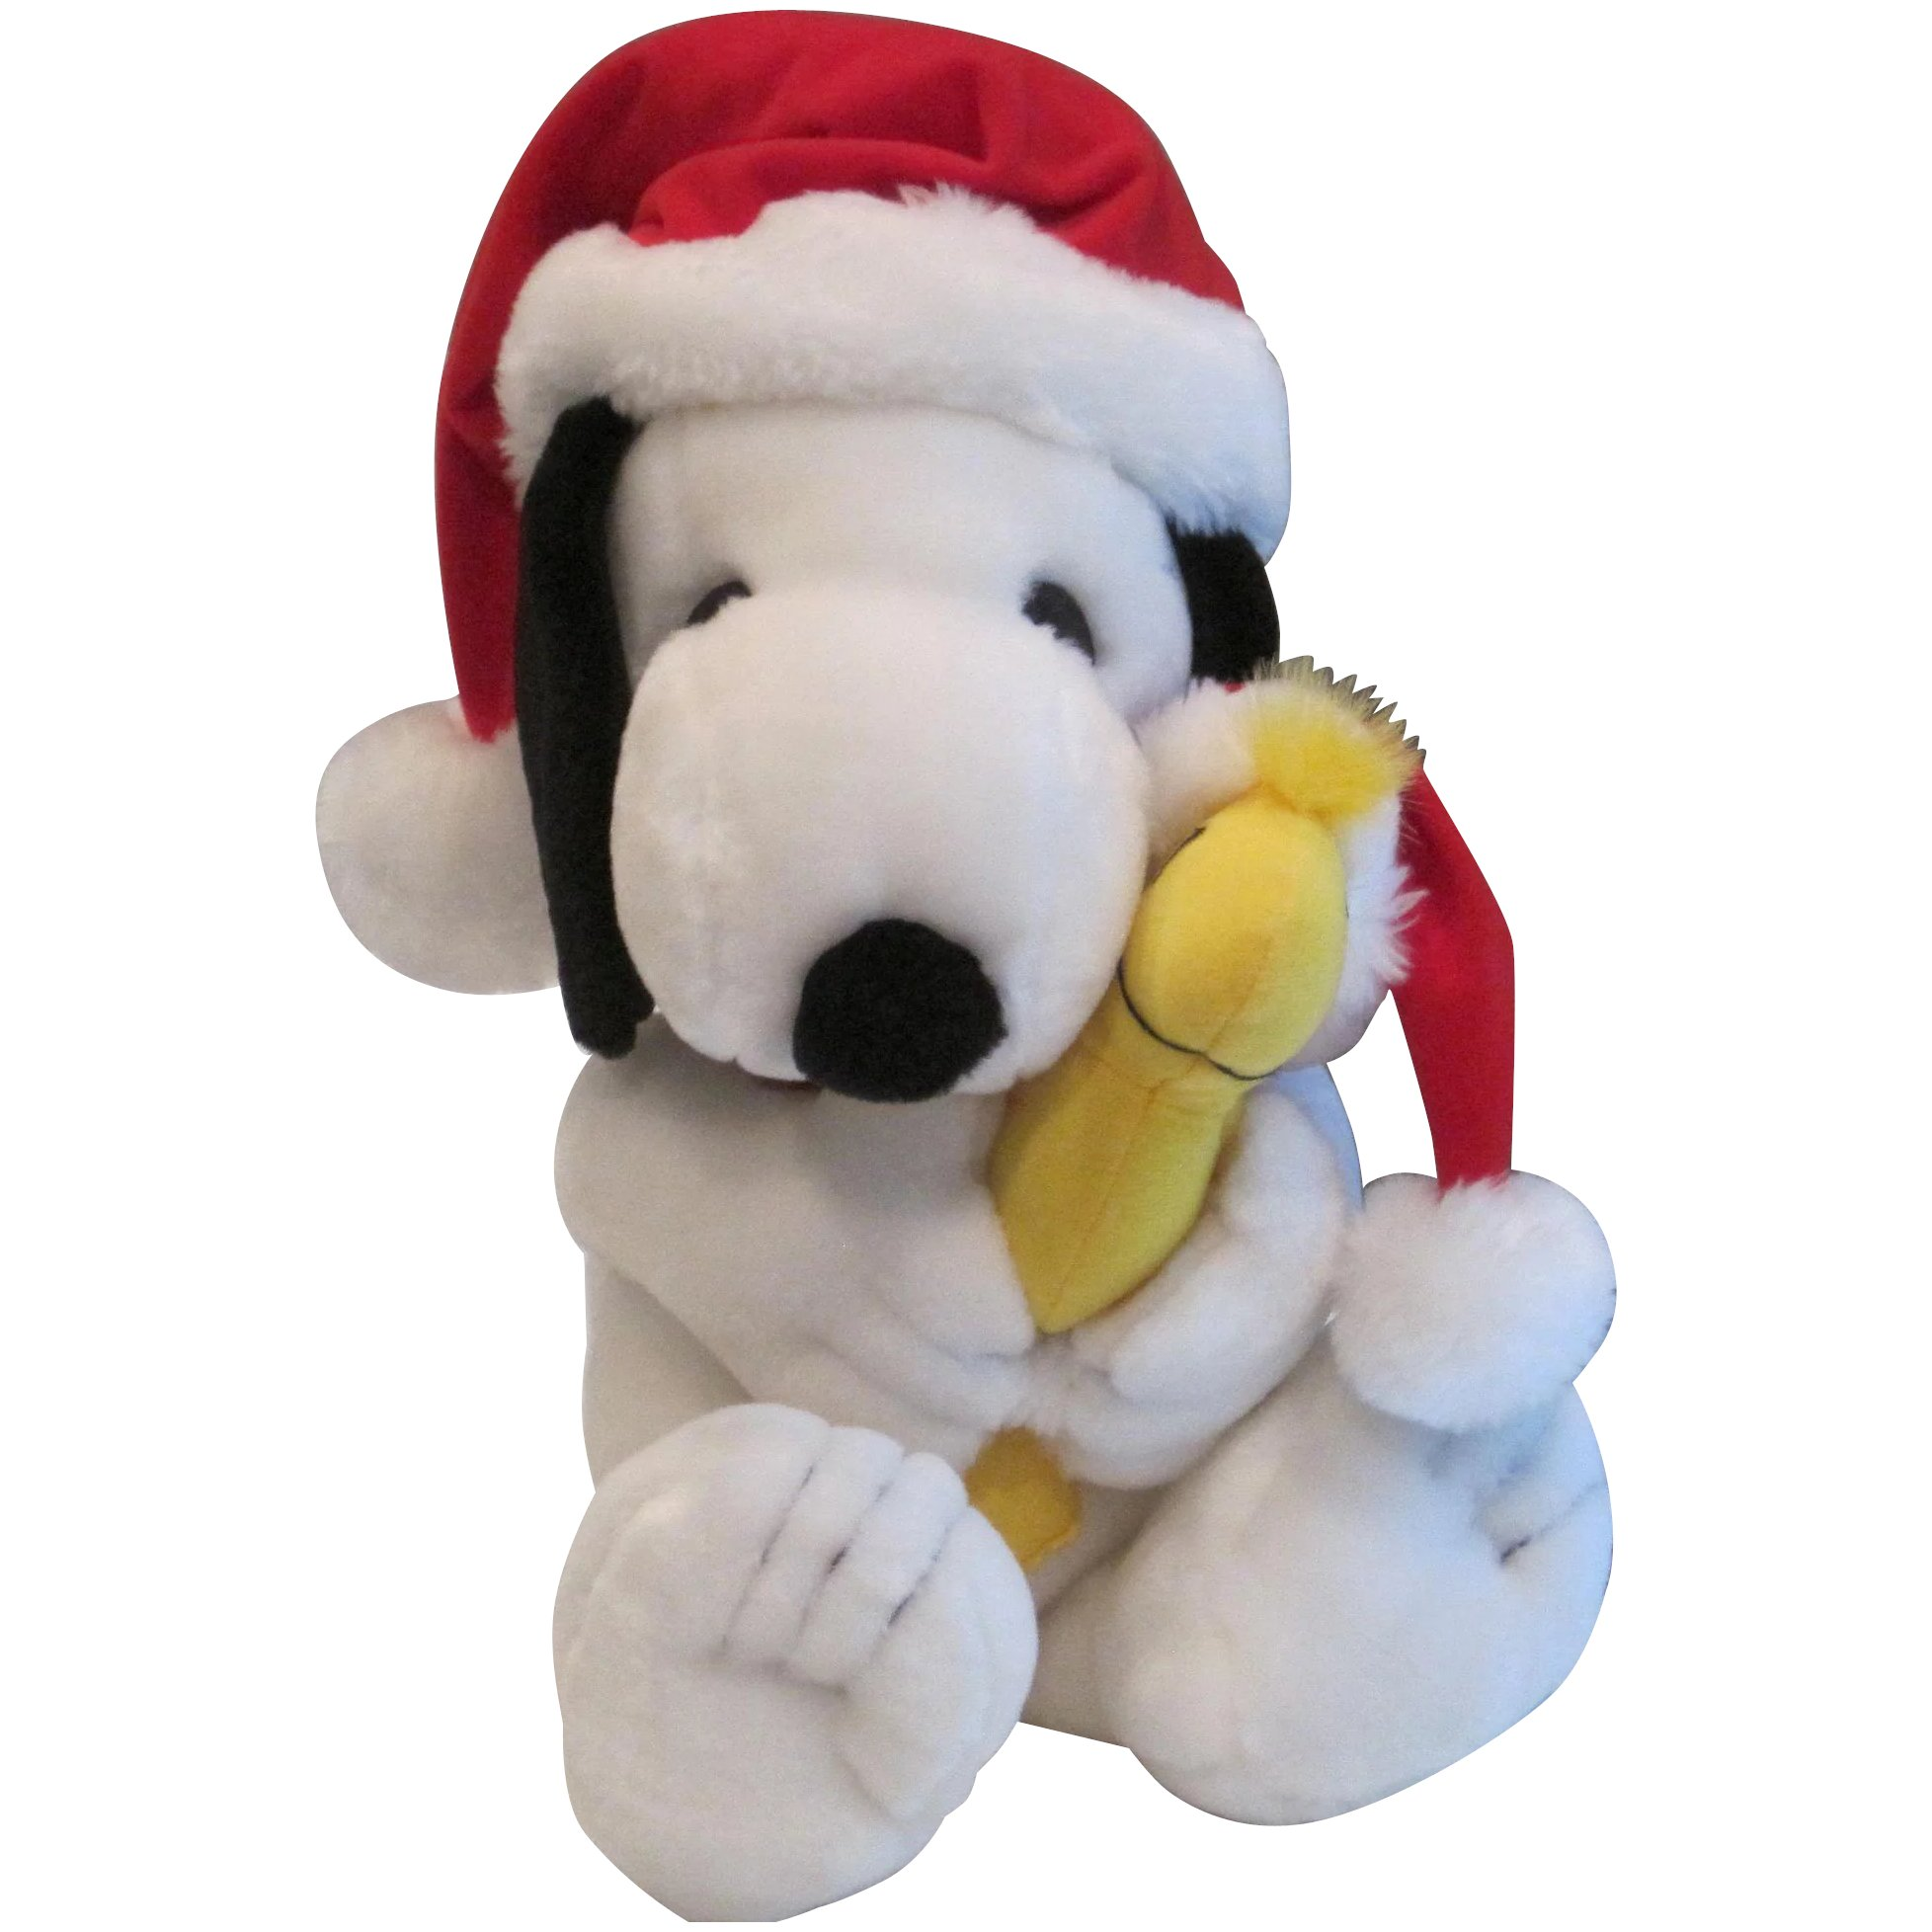 Vintage Snoopy and Woodstock in Christmas Stocking Hats. Click to expand a6c13dae5c0